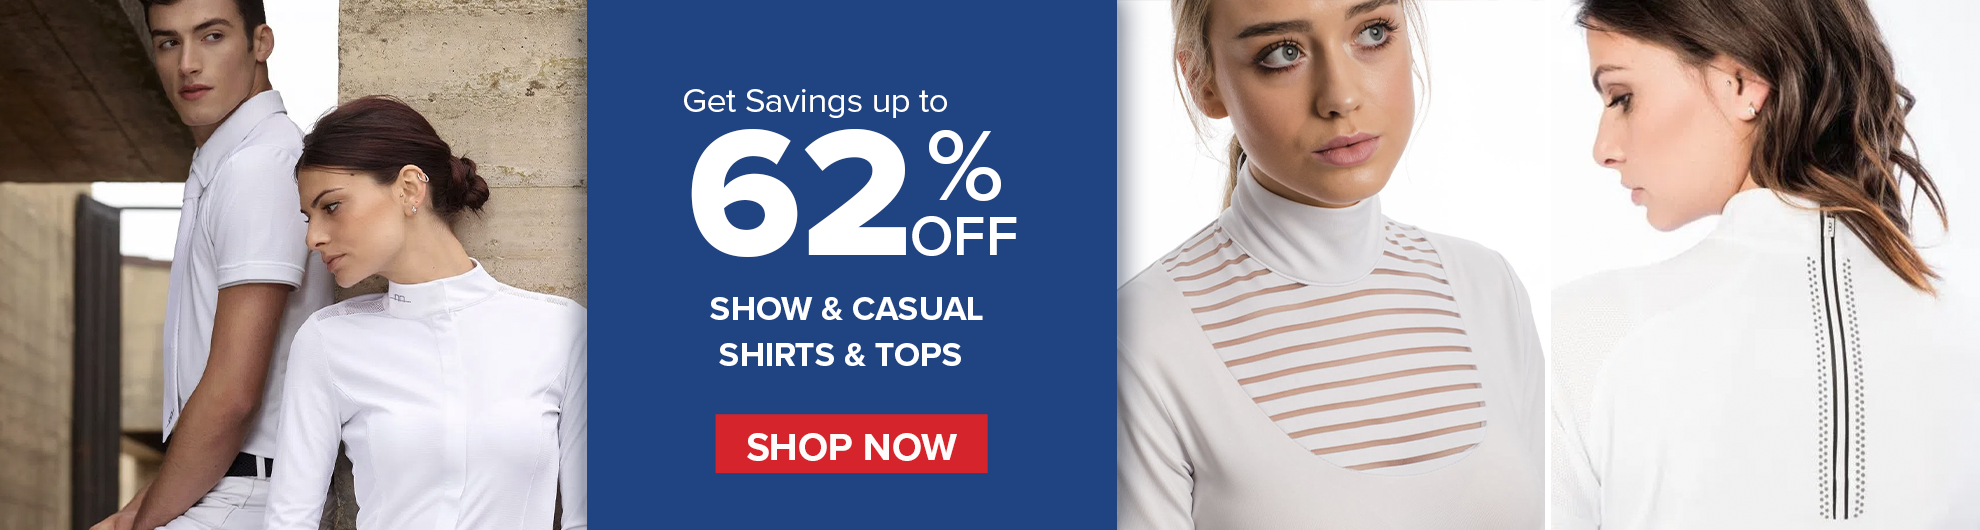 Show & Casual Shirts from Top Equestrian Brands